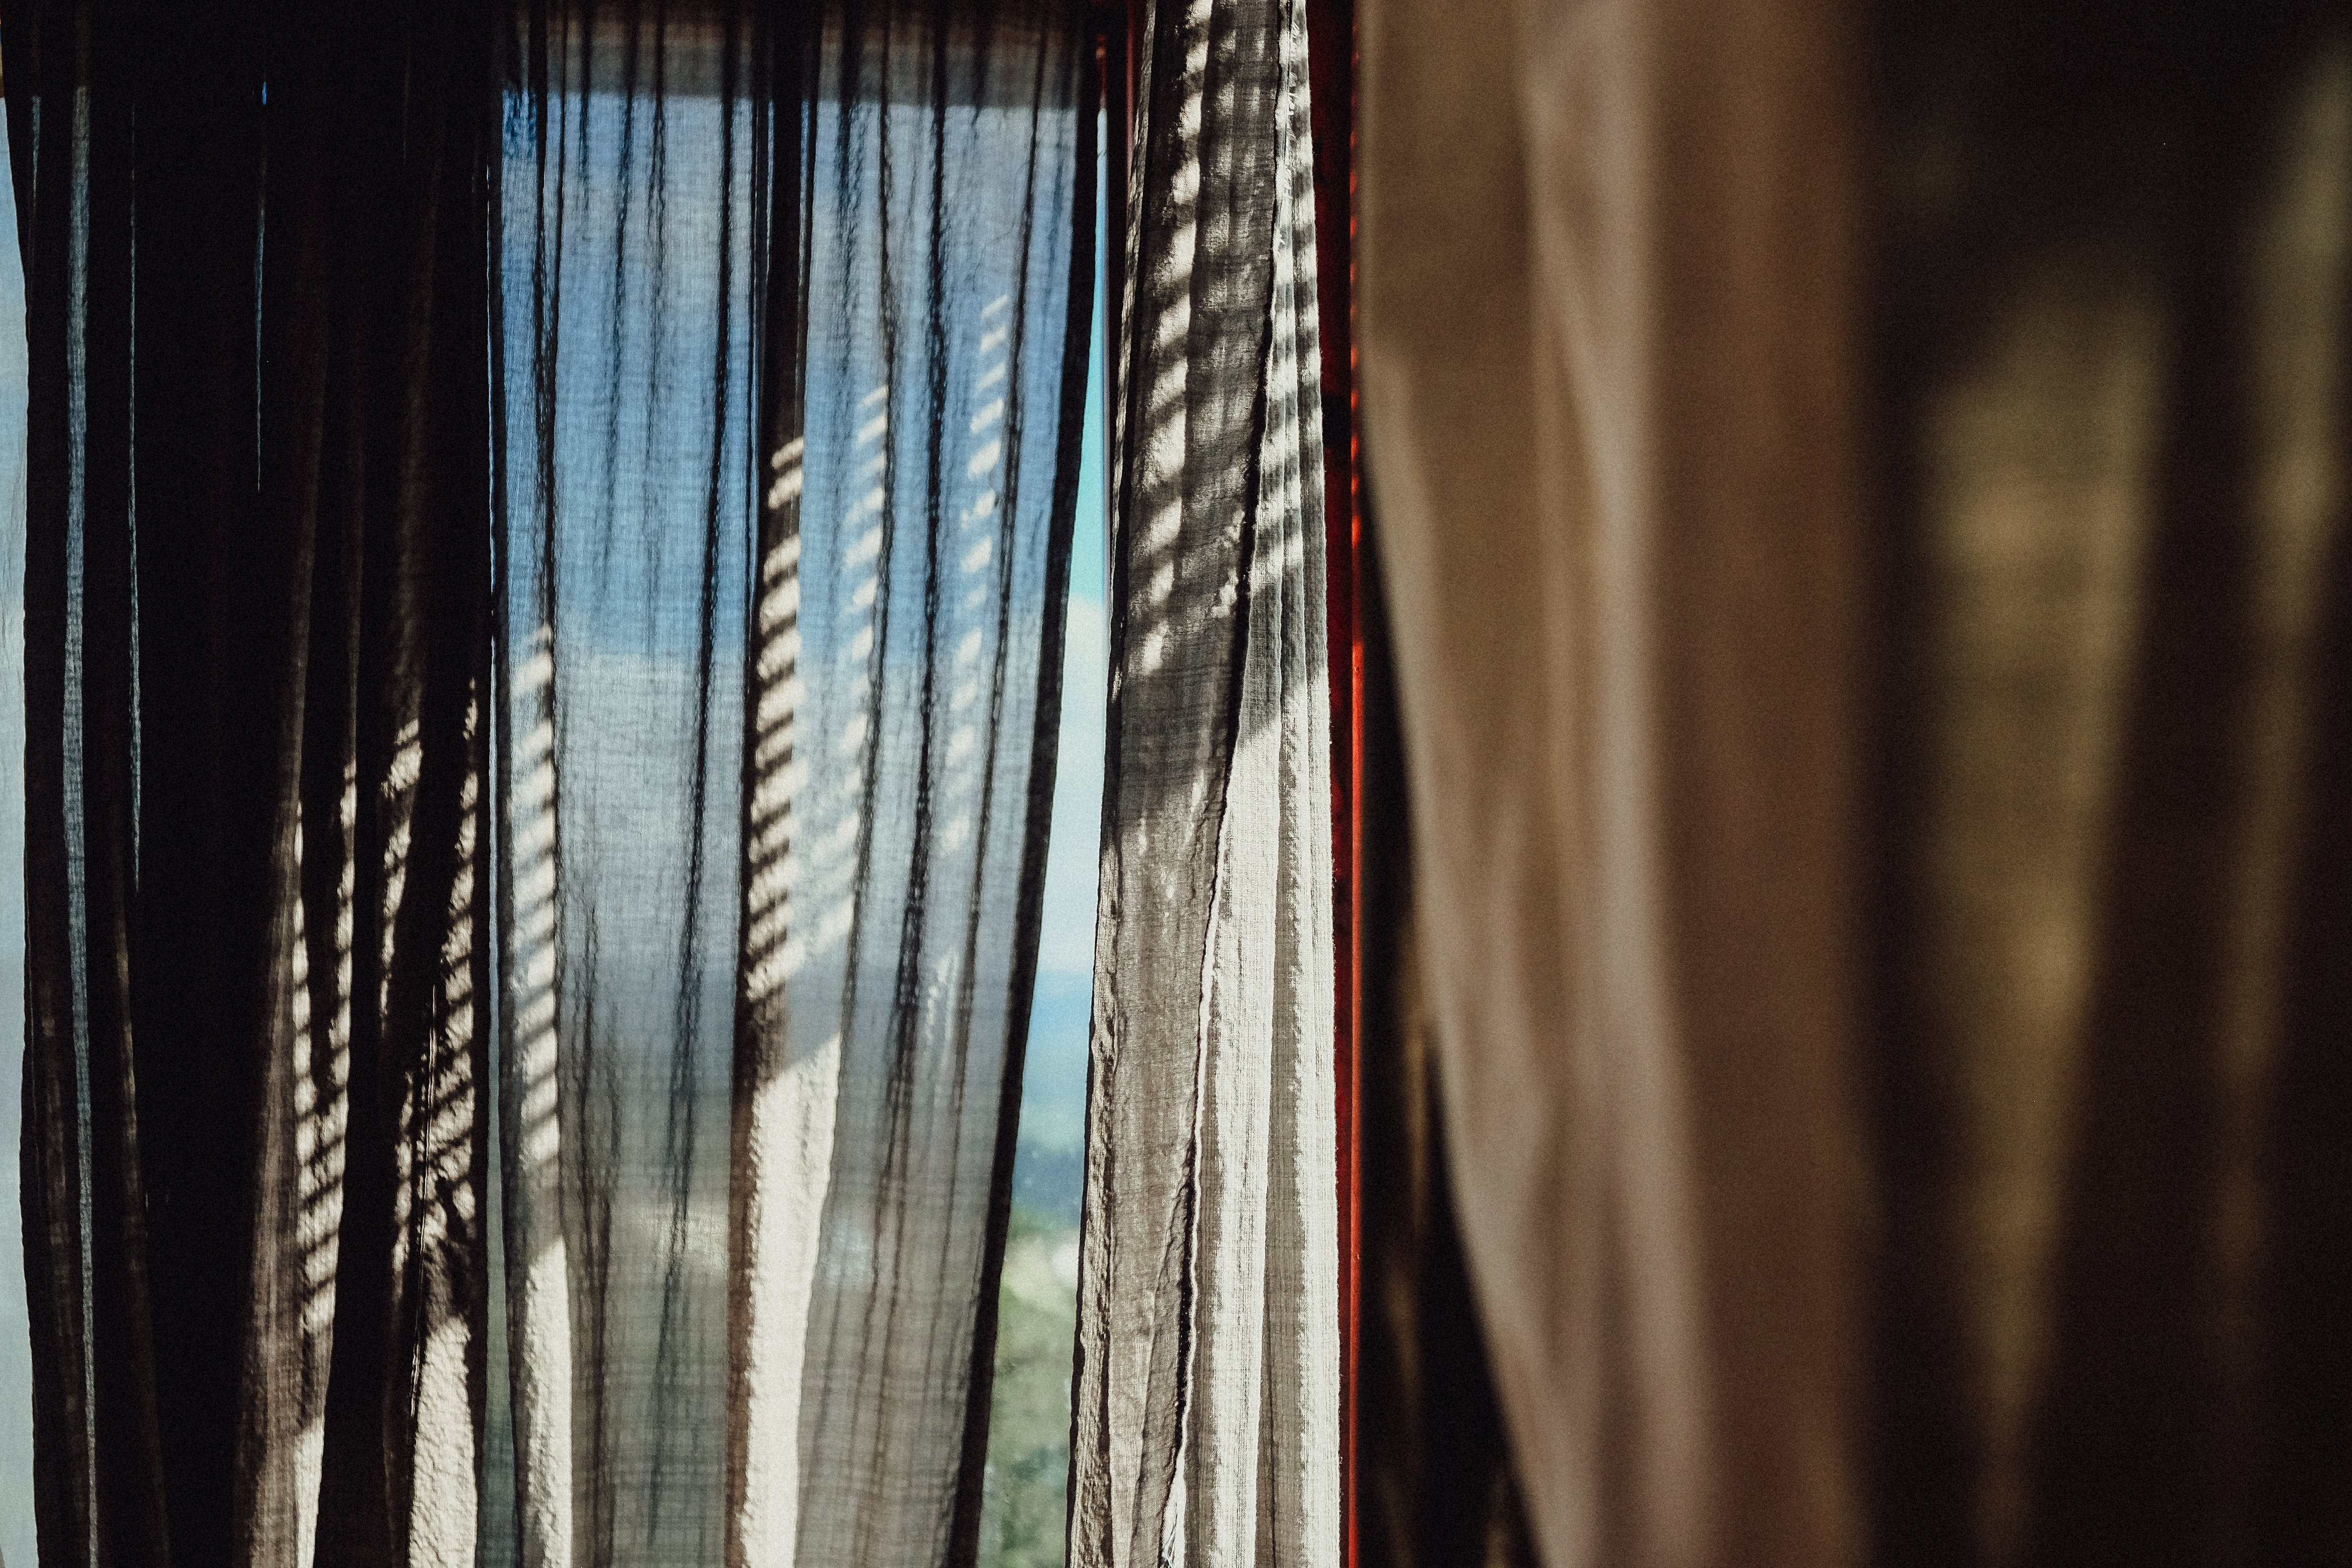 Focus Photography of Brown Curtain